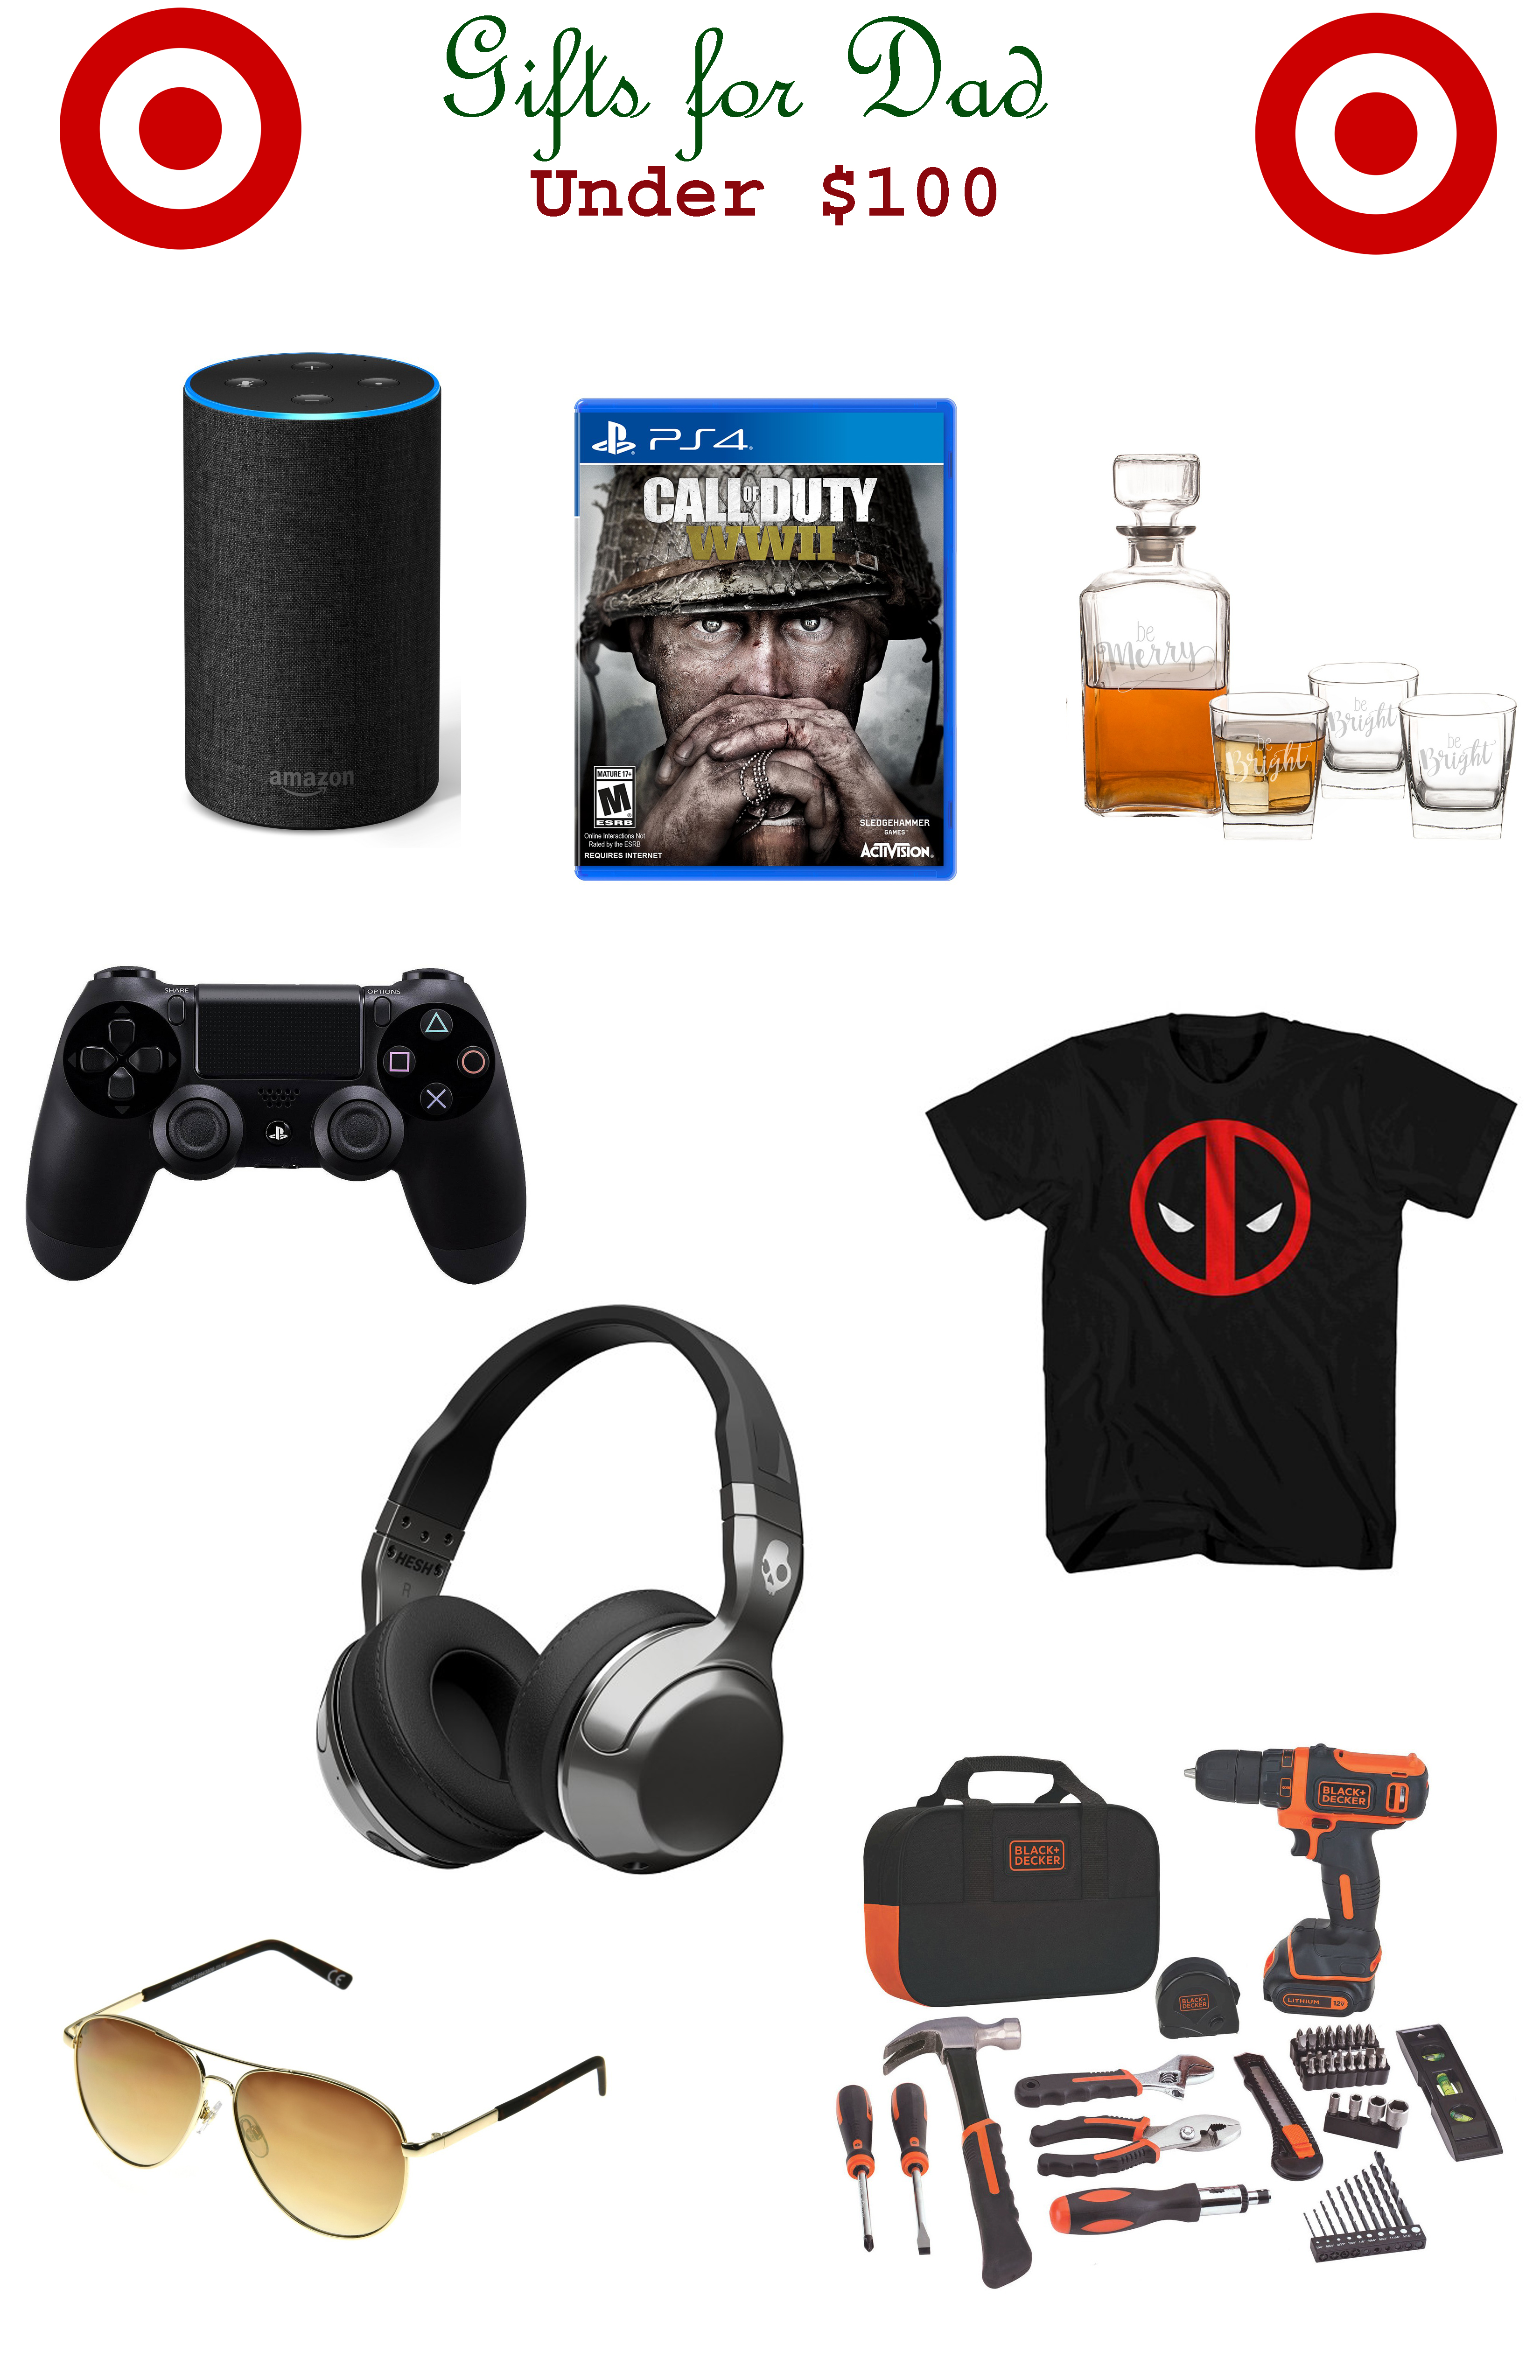 Gift Ideas for Dad/Husband